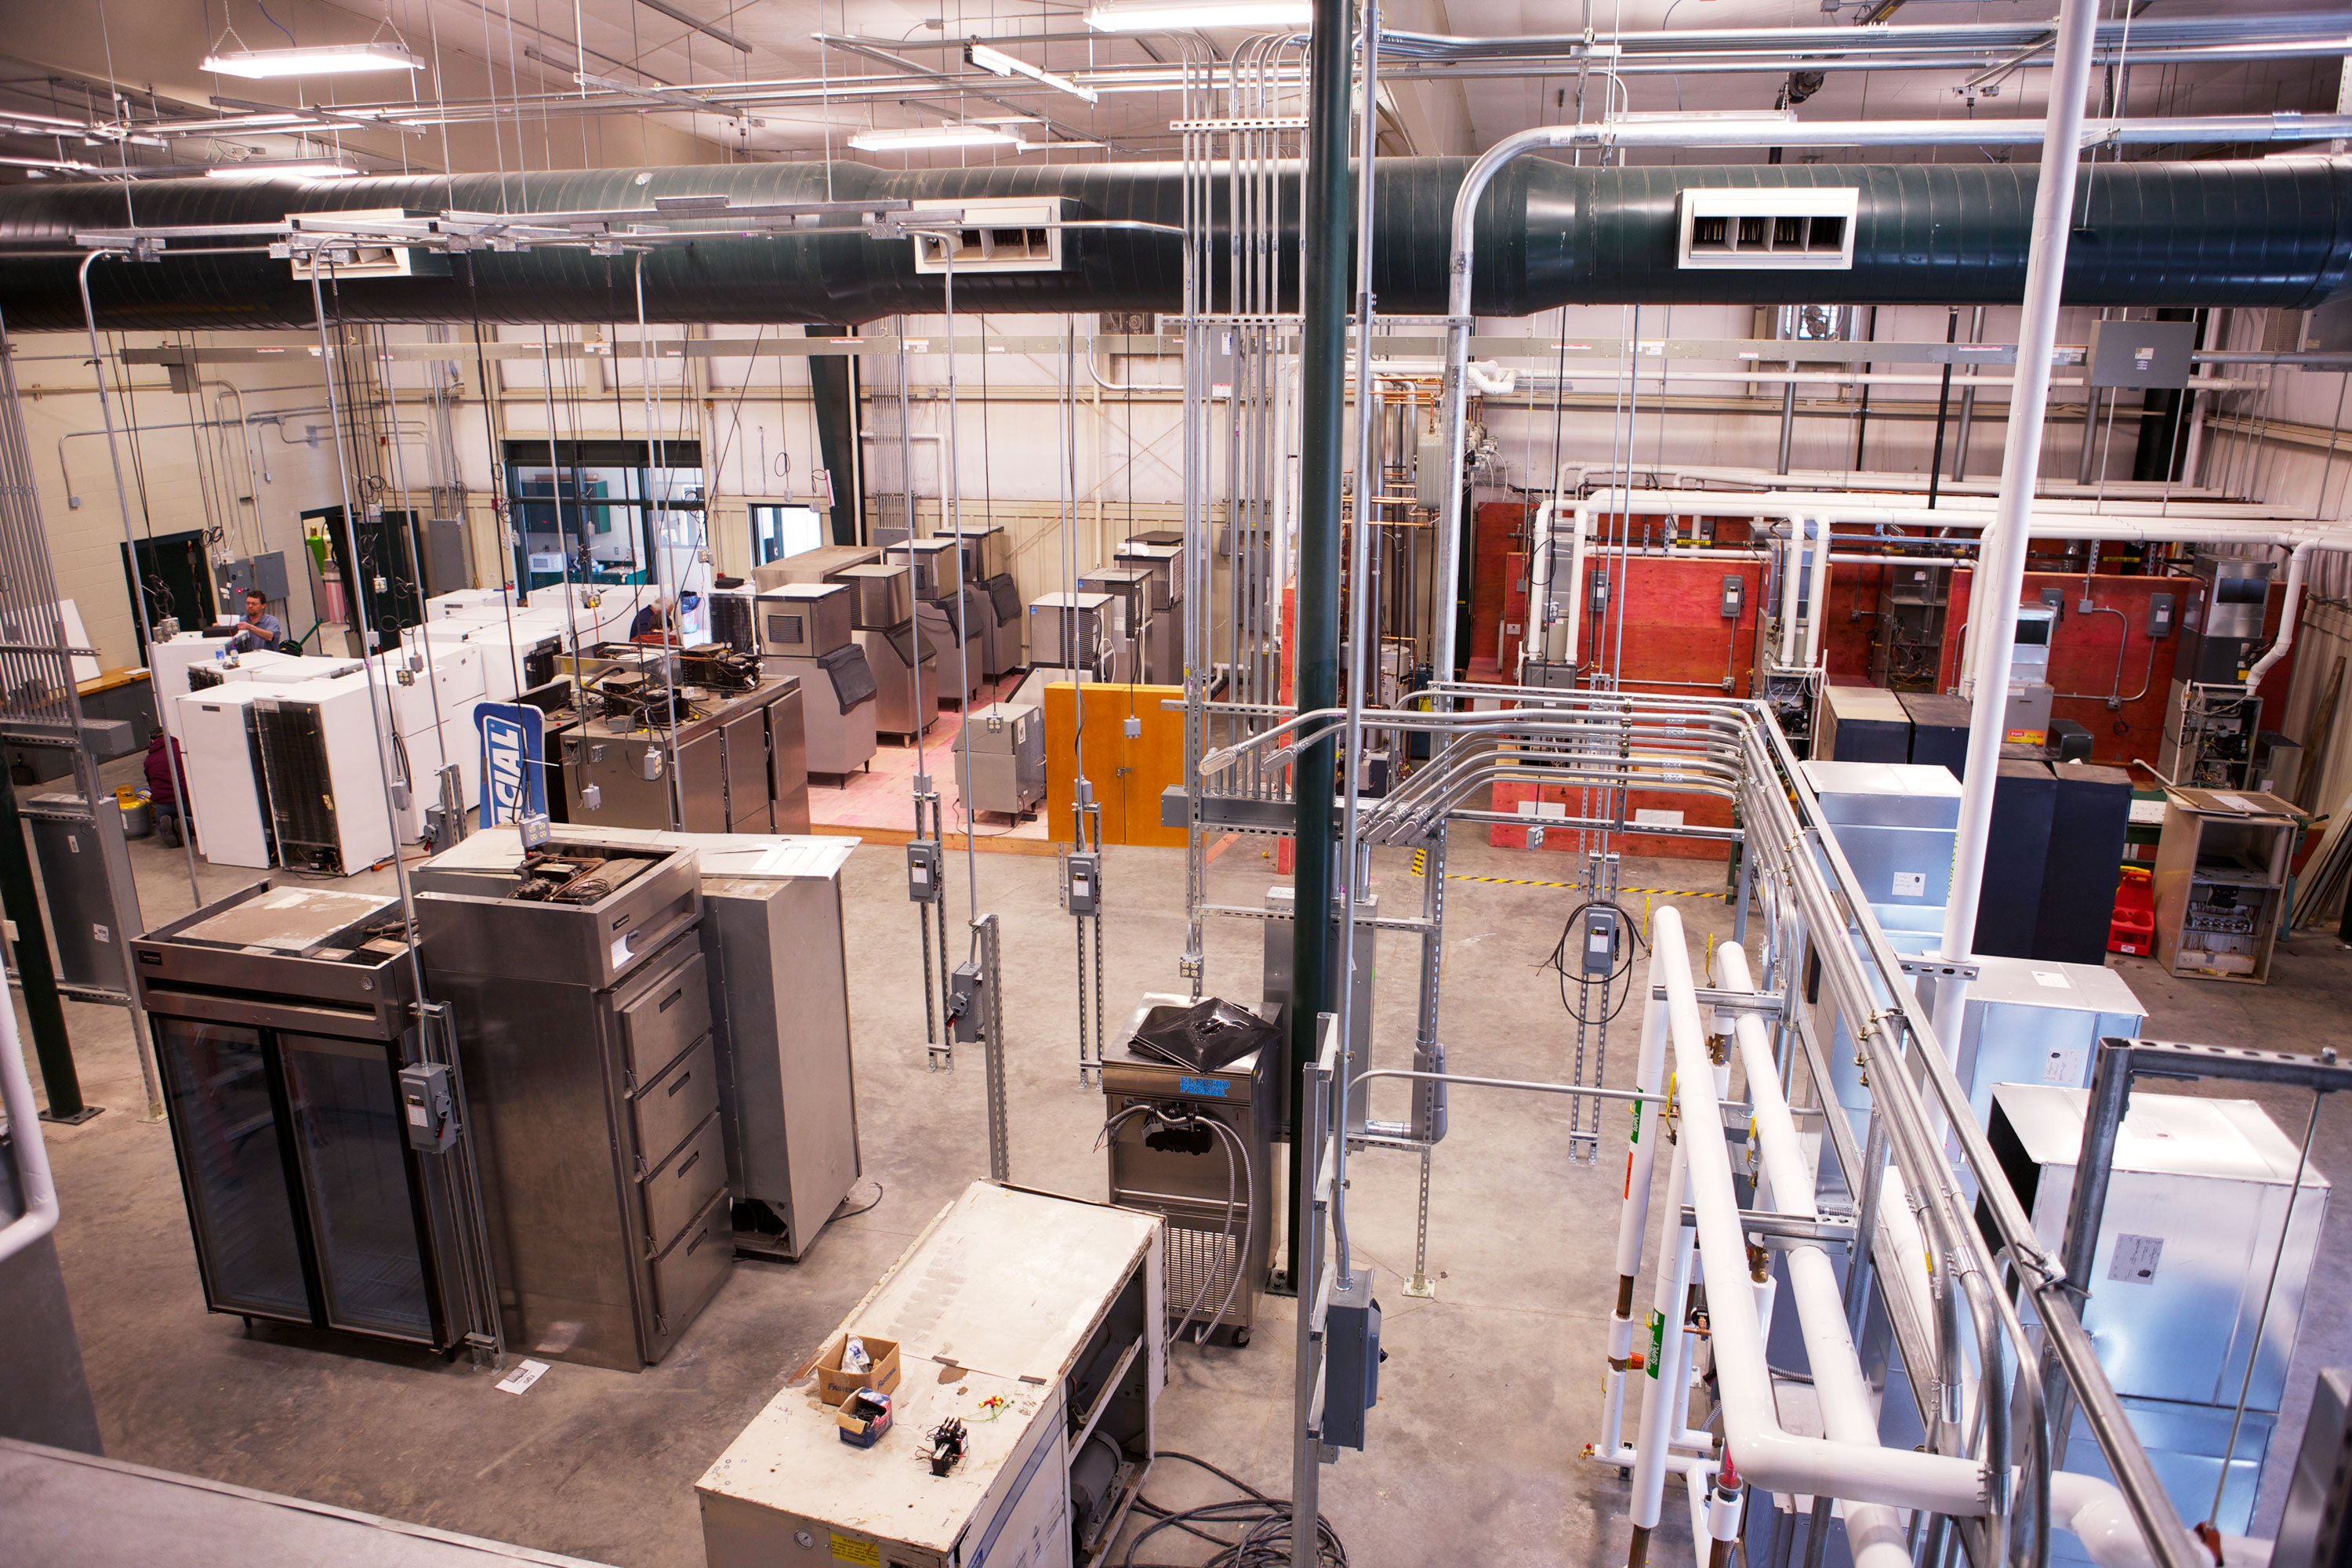 An bird's eye view of a geothermal system, as well as multiple ice machines, refrigerators, and overhead heating and cooling units.